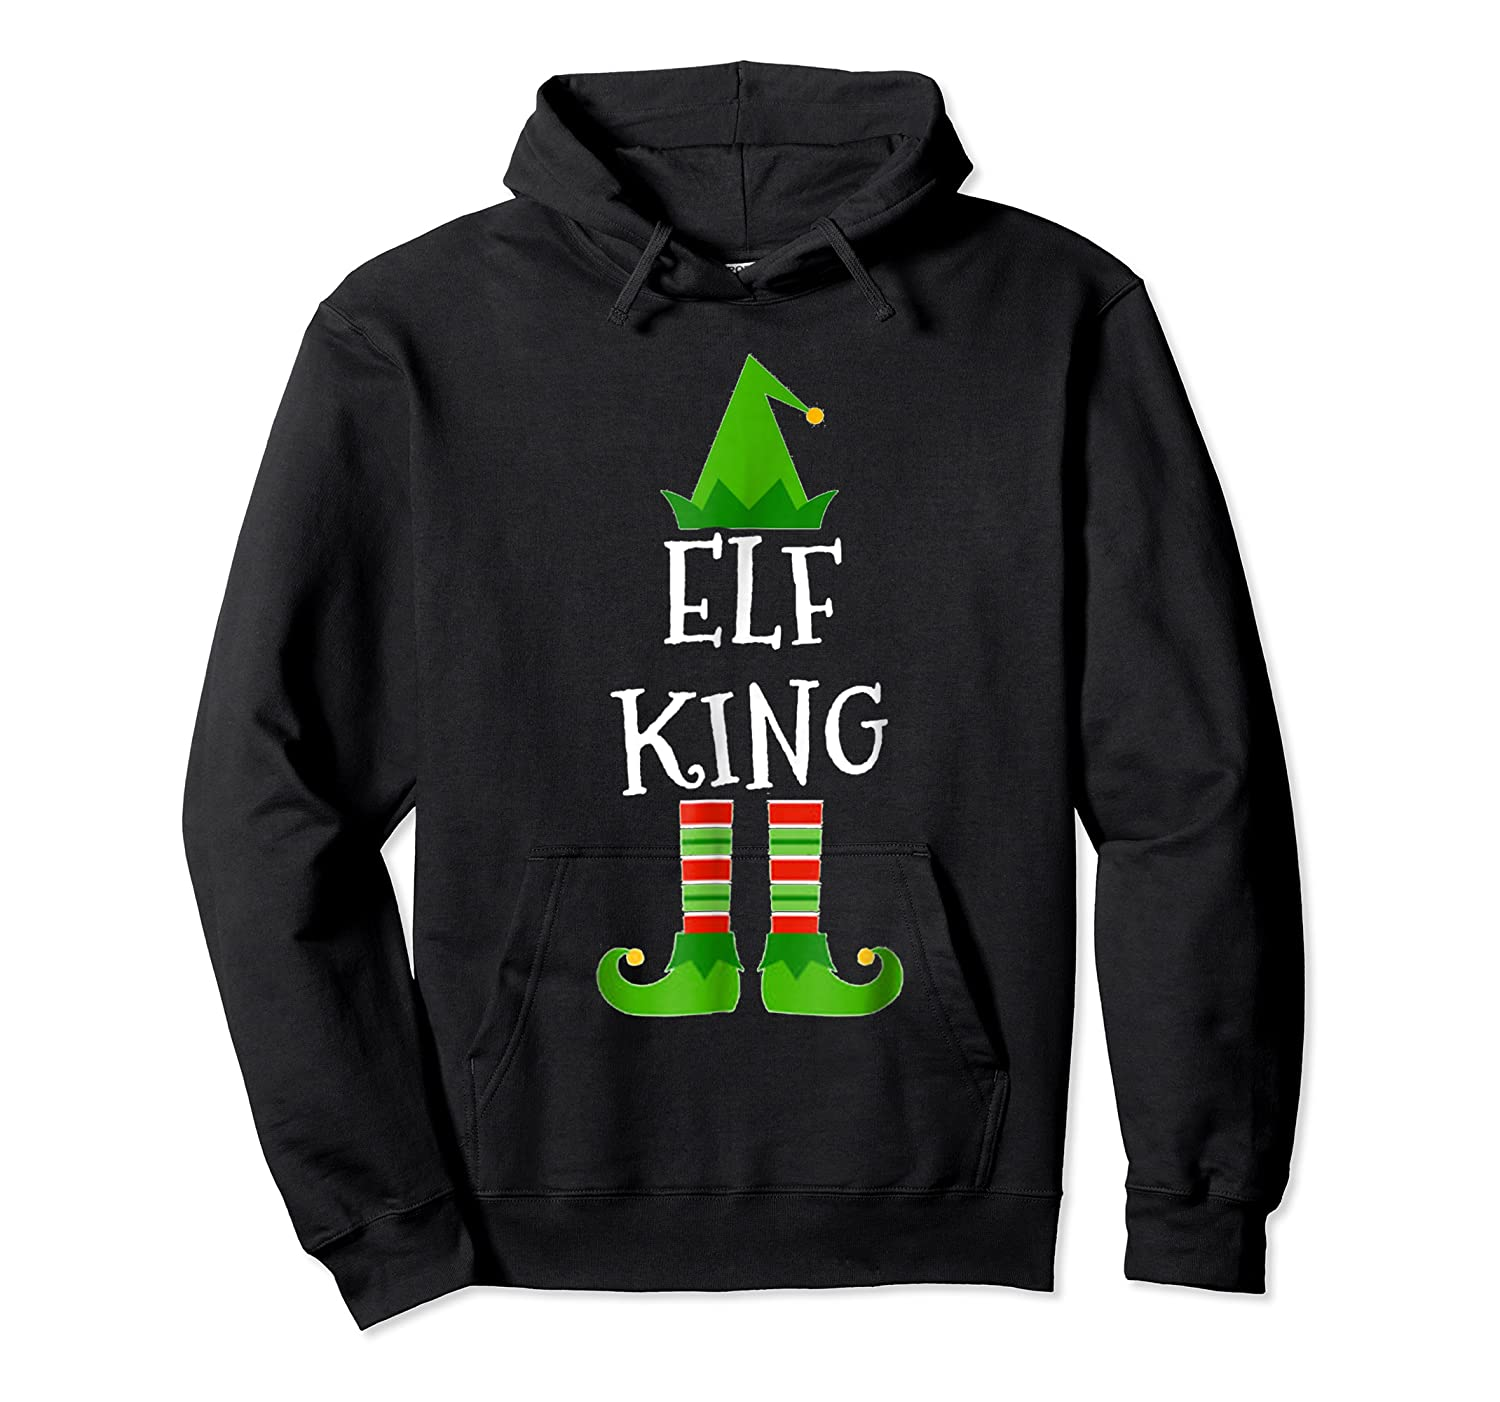 Elf King Matching Family Group Christmas Tshirt Unisex Pullover Hoodie